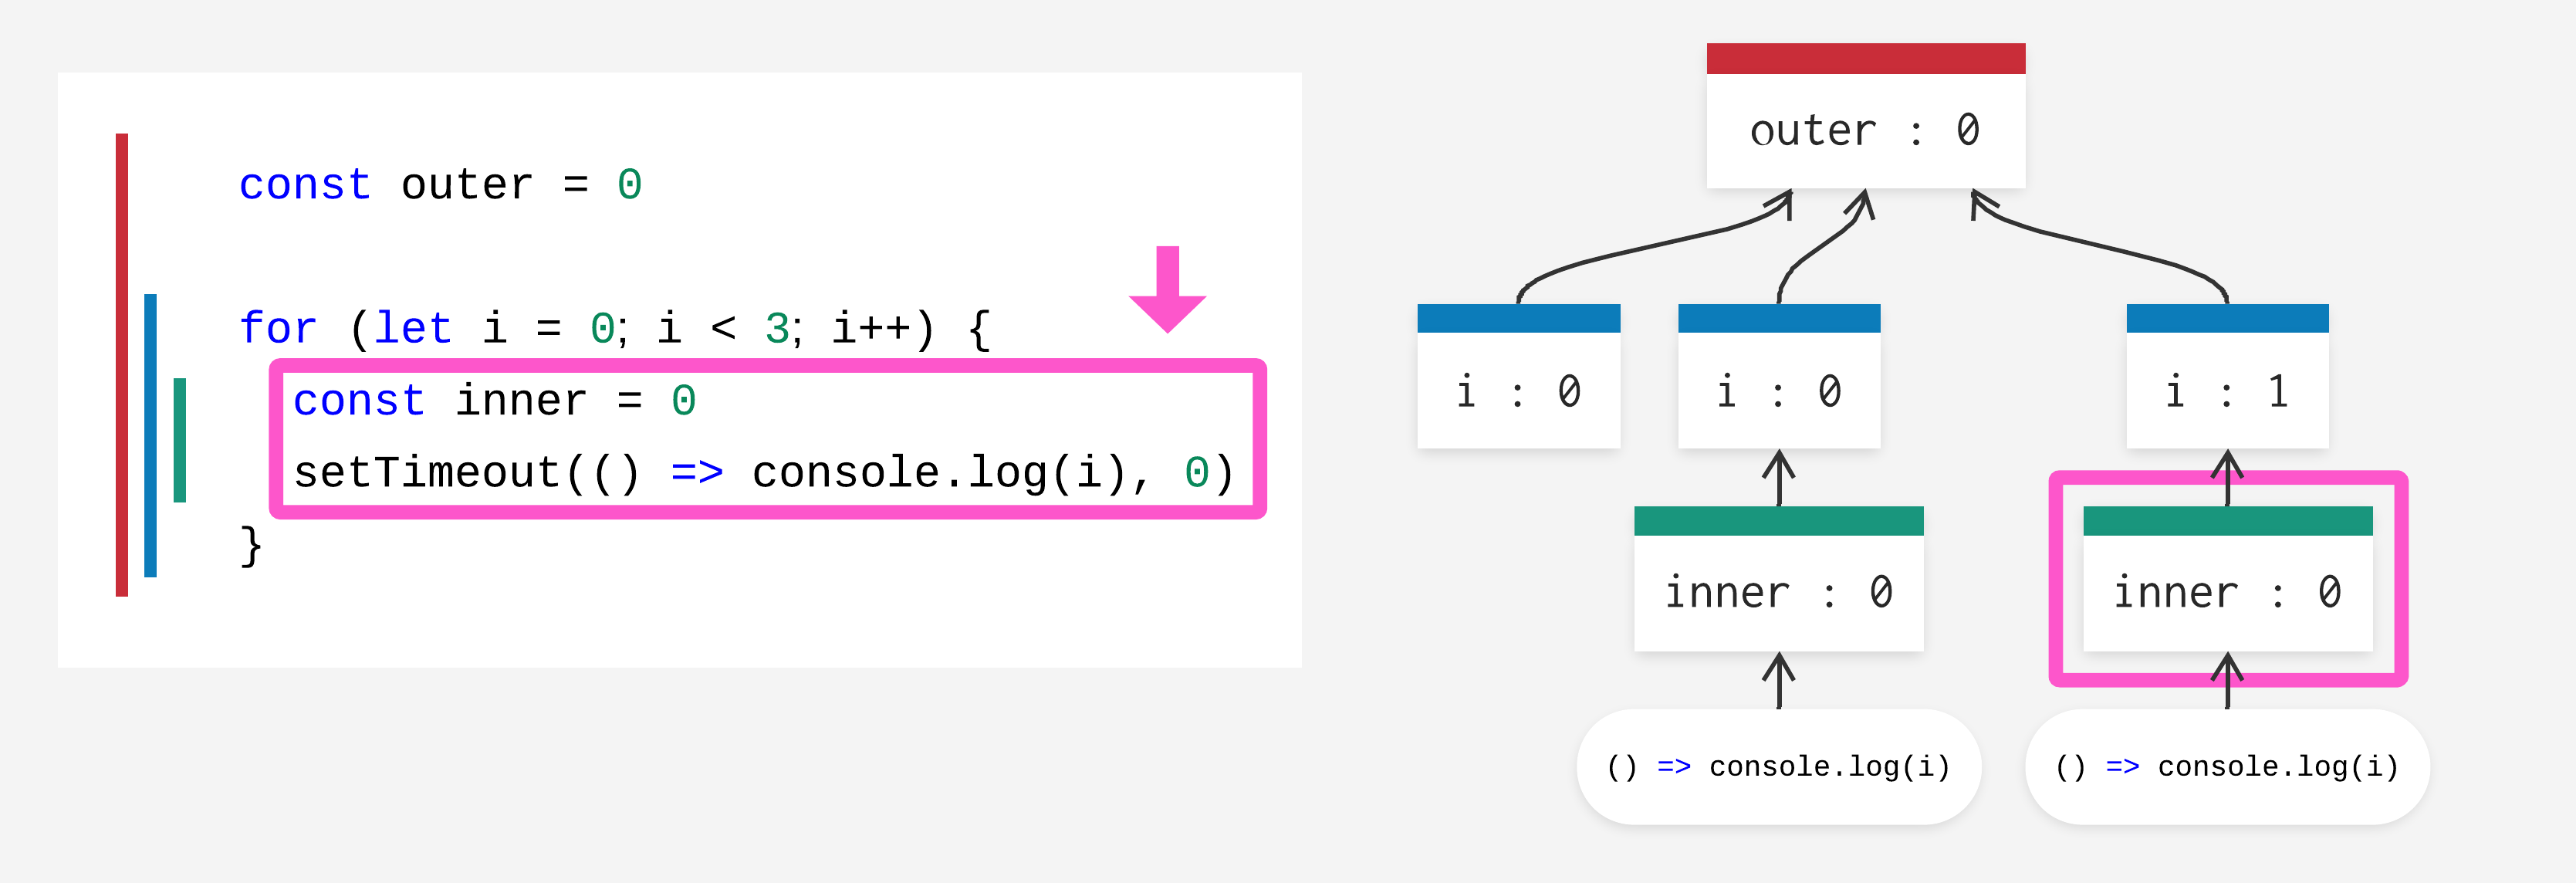 for-loop execution context8.png